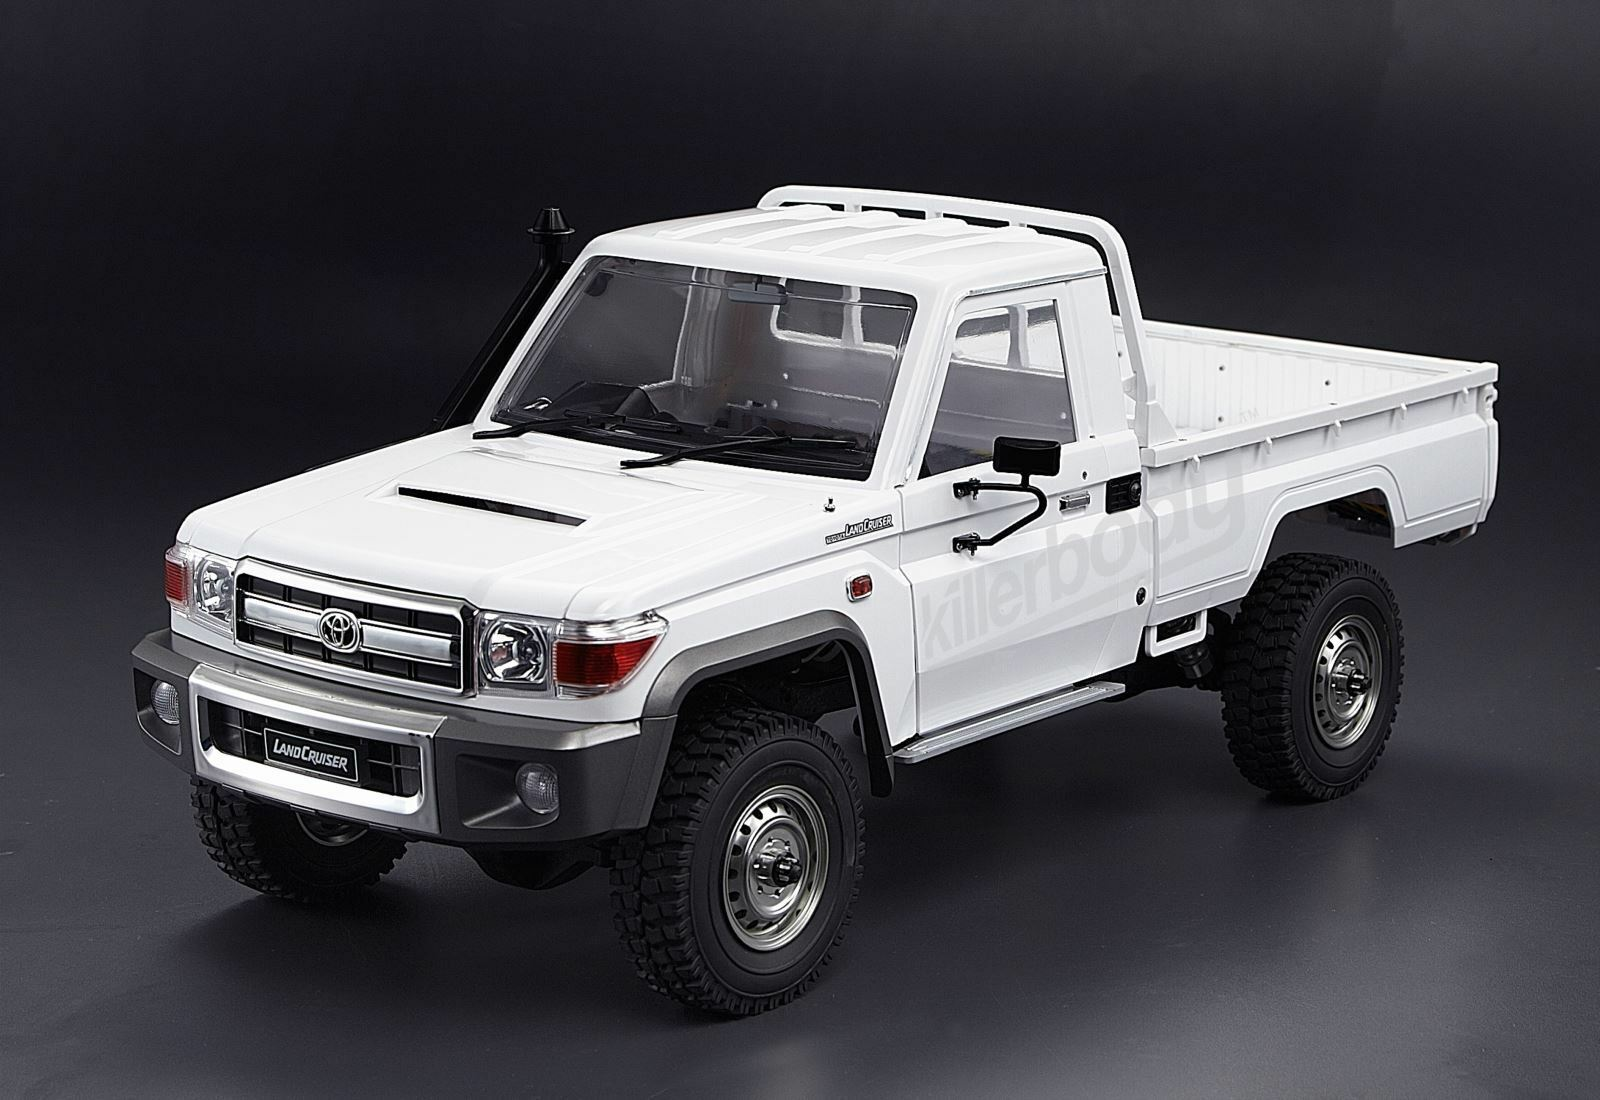 rc 1 10 truck hard body shell toyota land cruiser 70 pick. Black Bedroom Furniture Sets. Home Design Ideas